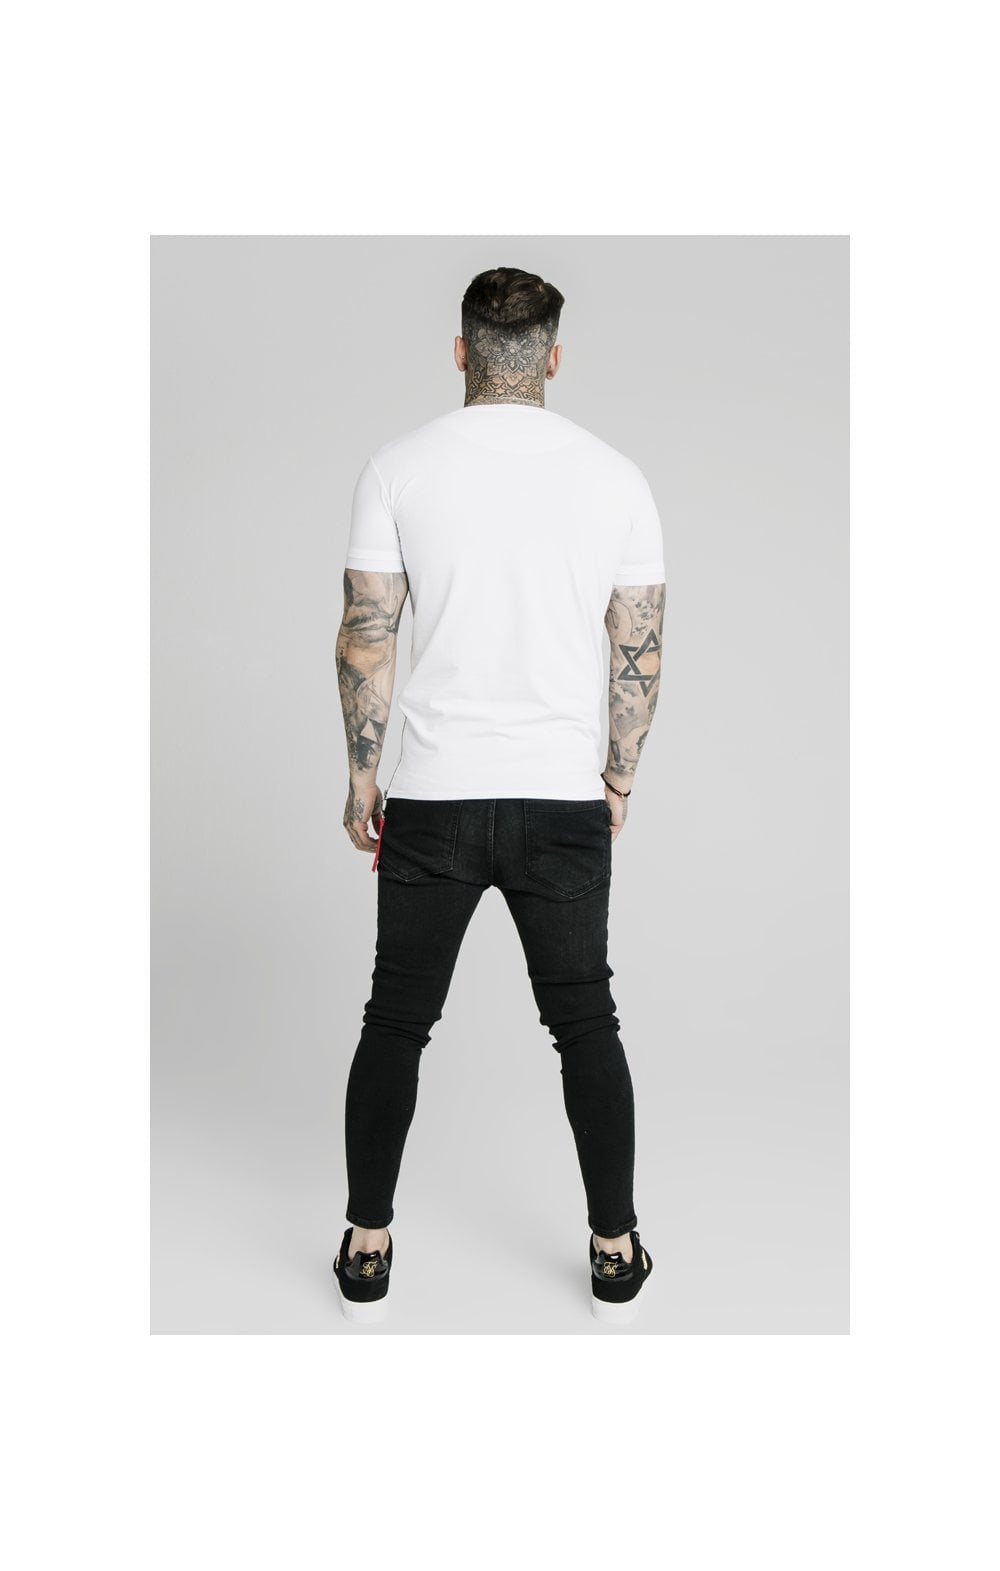 SikSilk S/S Signature Flock Tee - White (2)